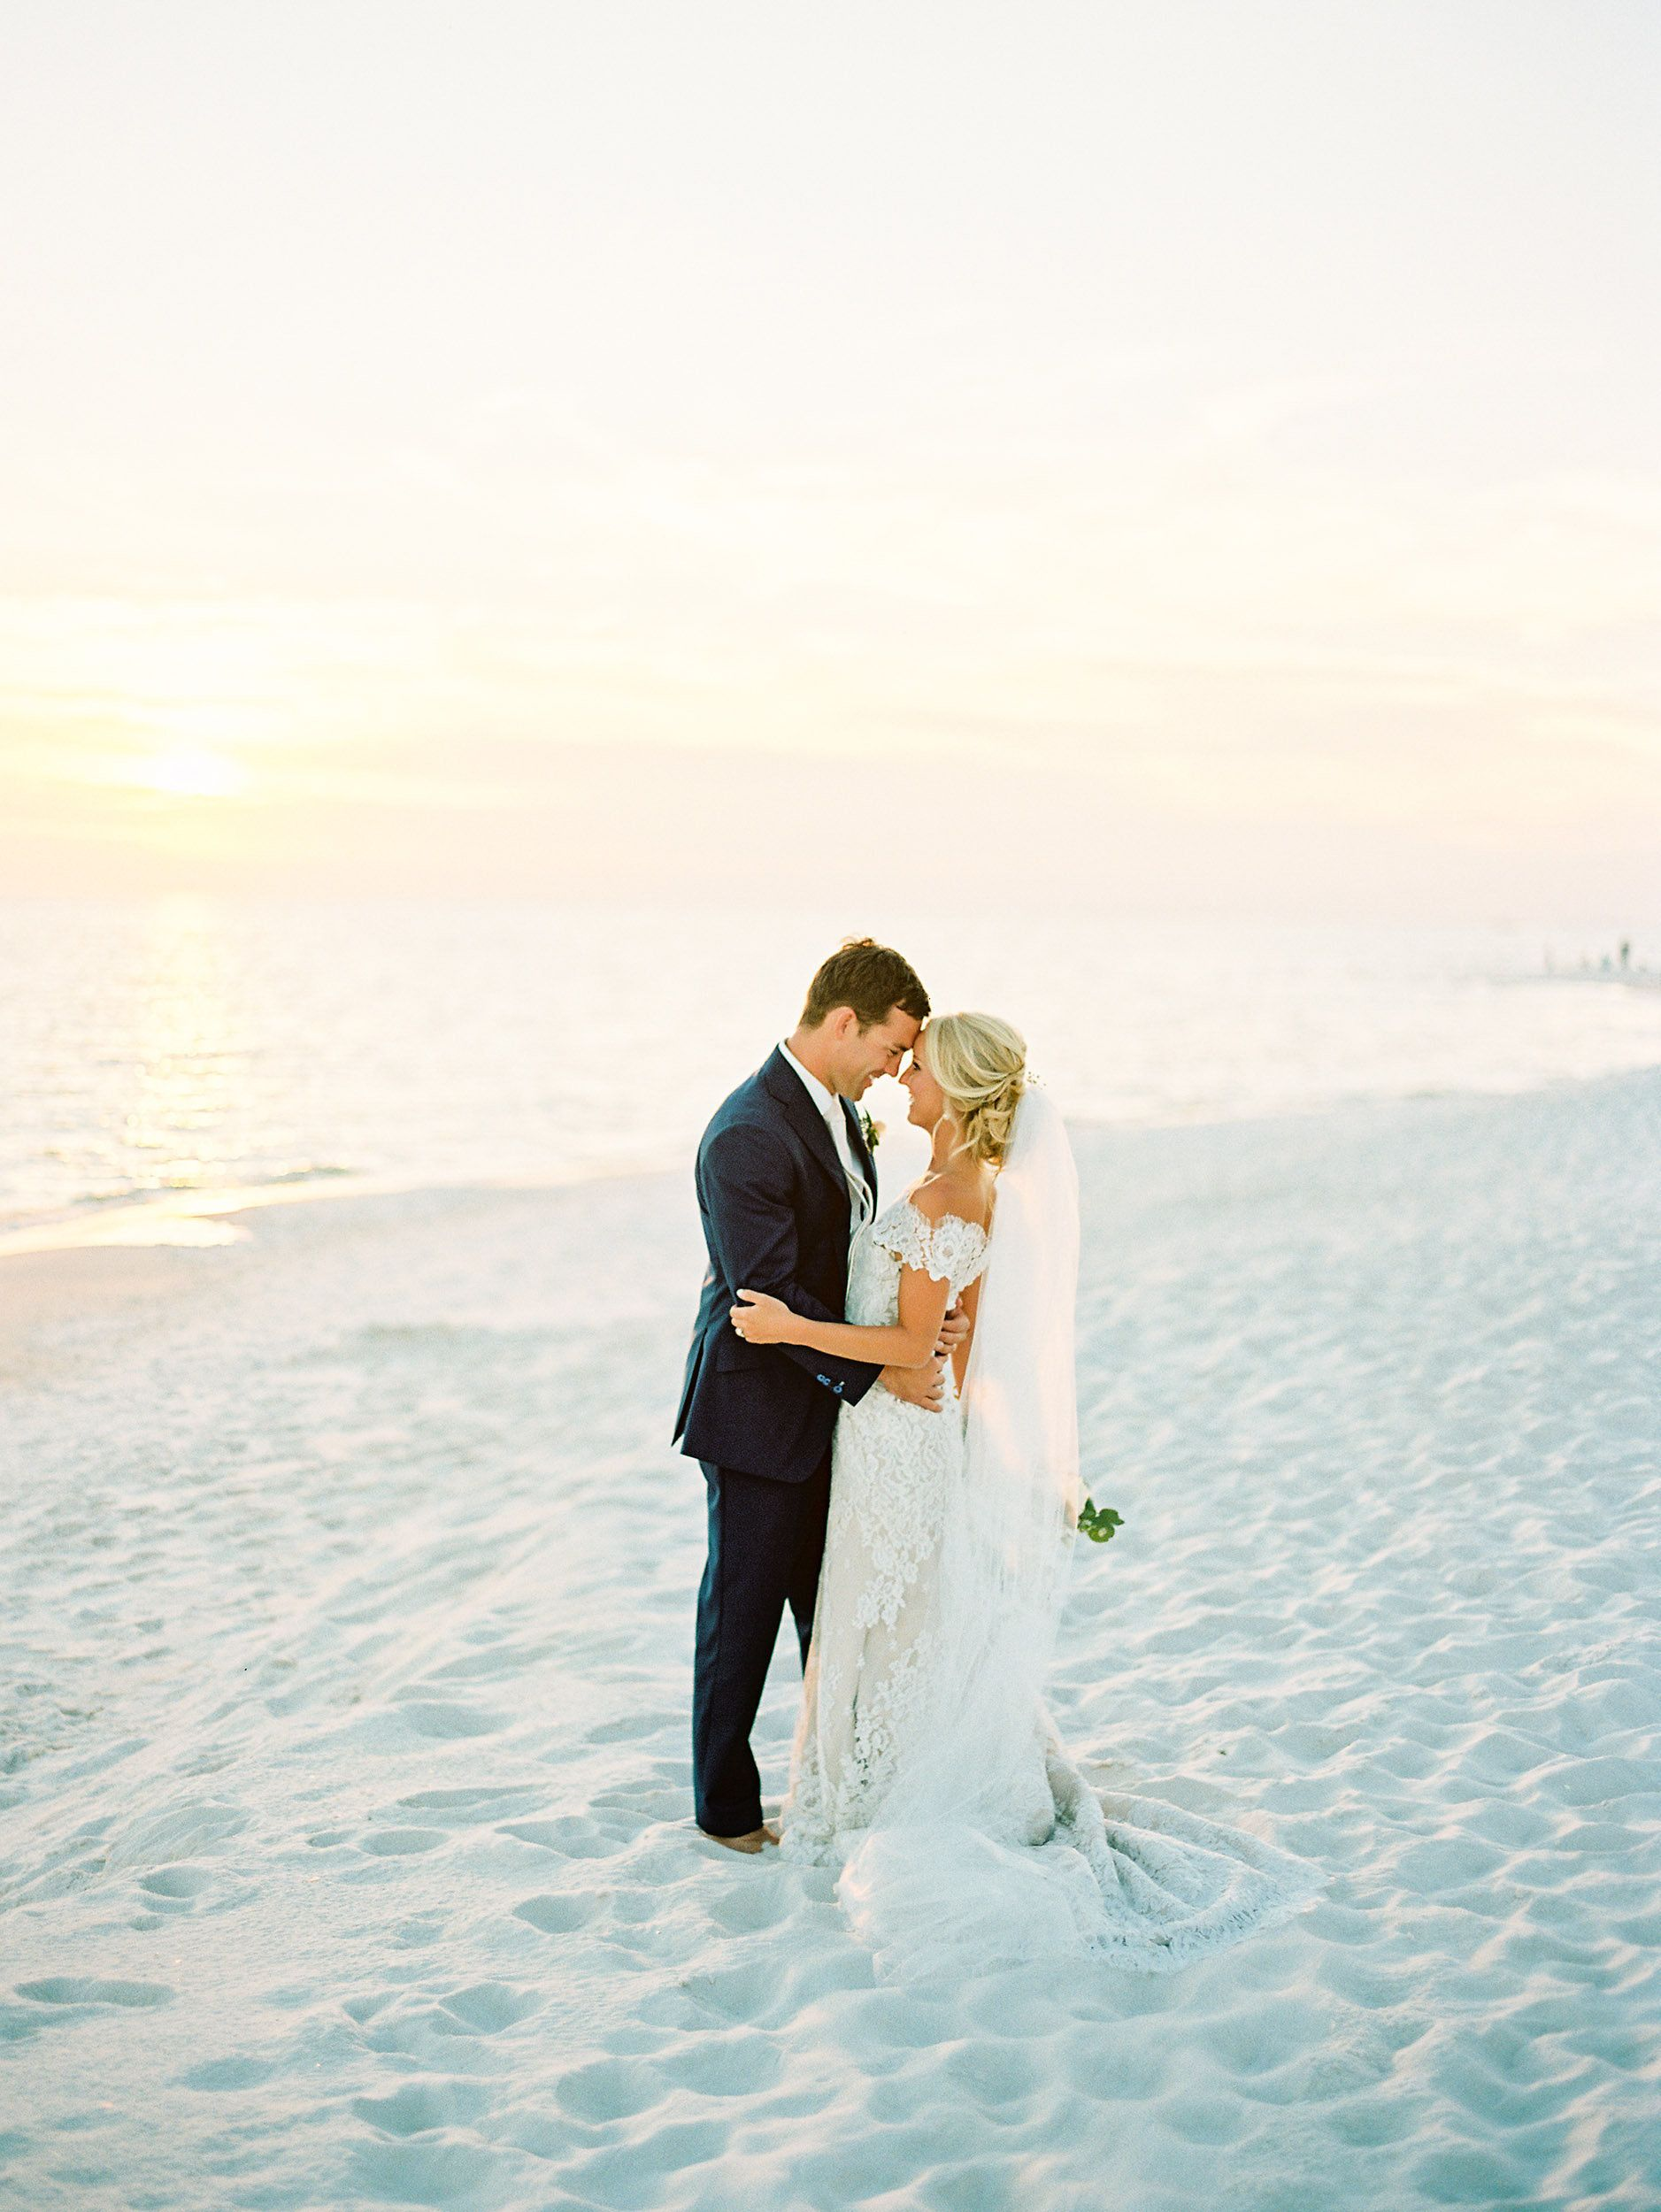 Lush, Organic Wedding in Alys Beach, Florida